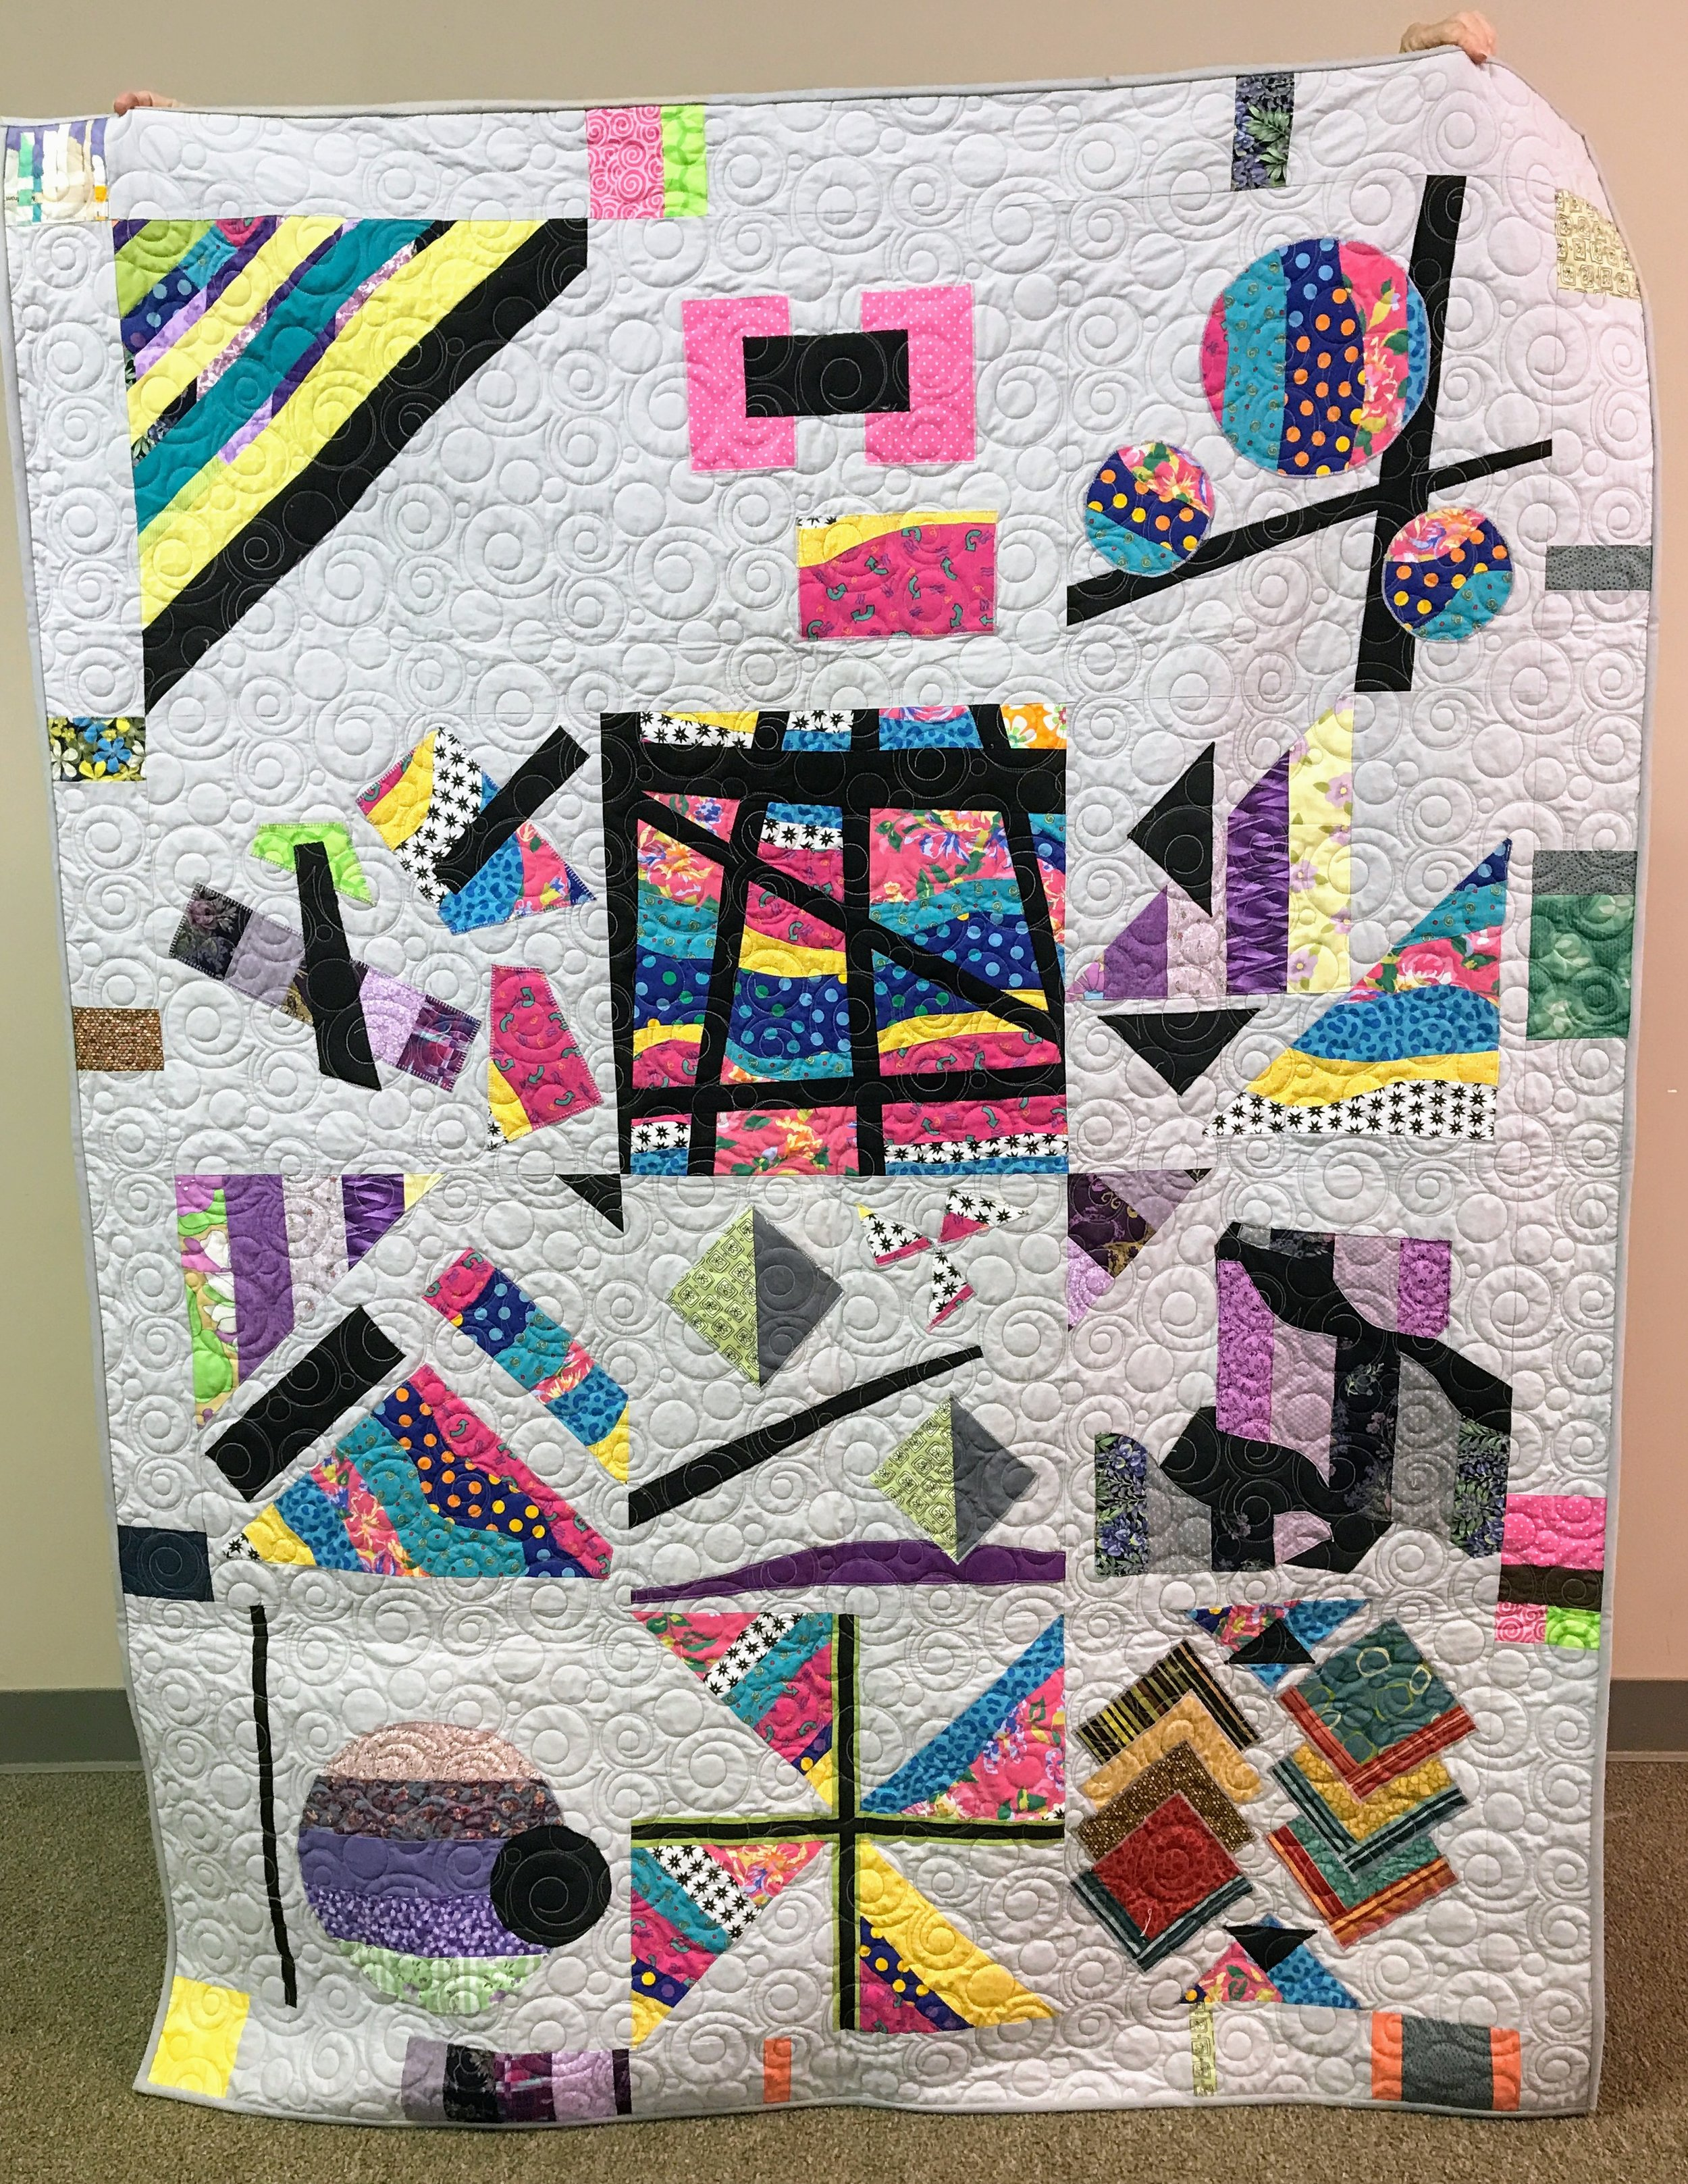 A quilt donated to Habitat for Humanity